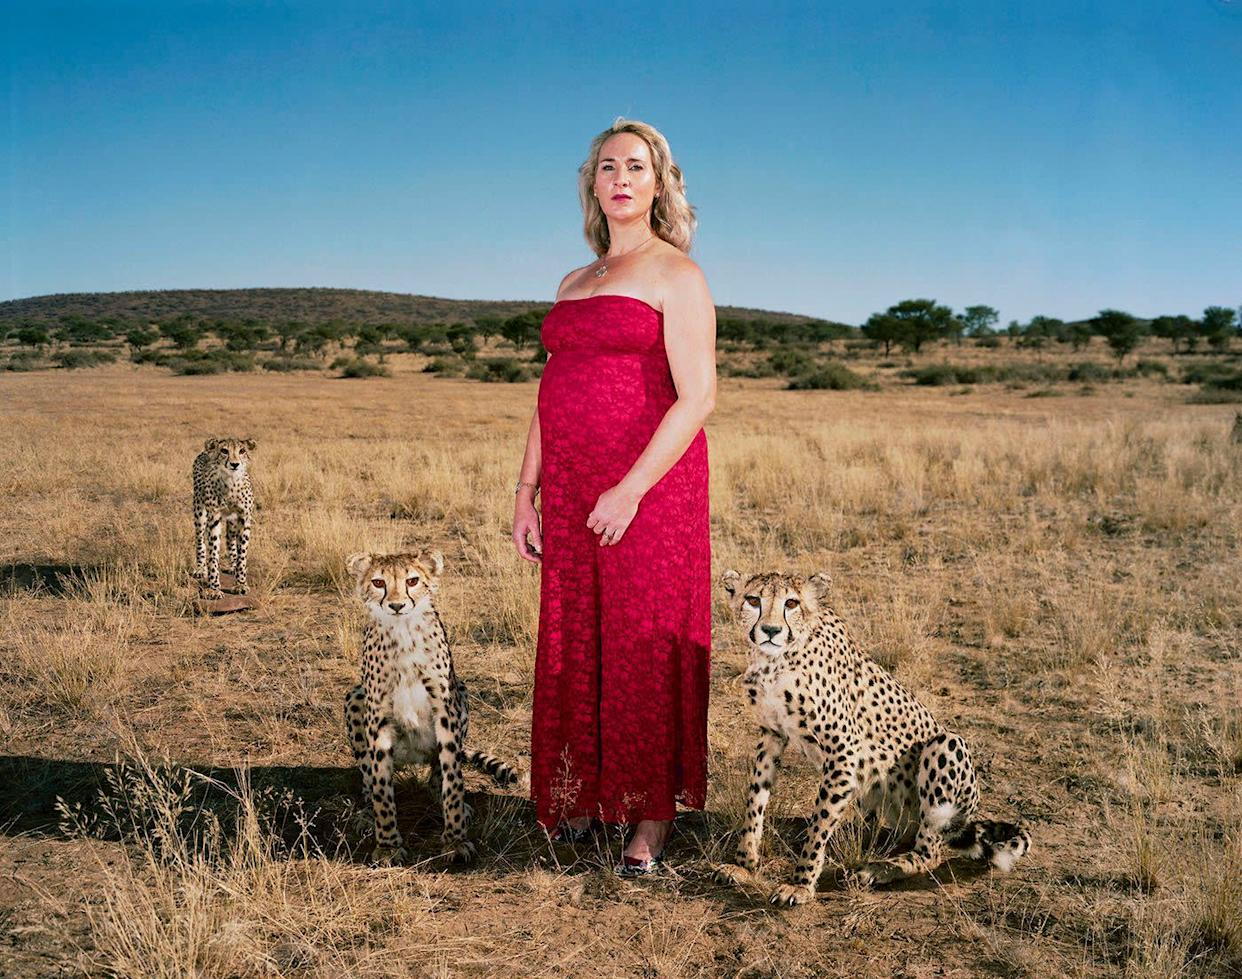 Danene and three full-mounted cheetahs.